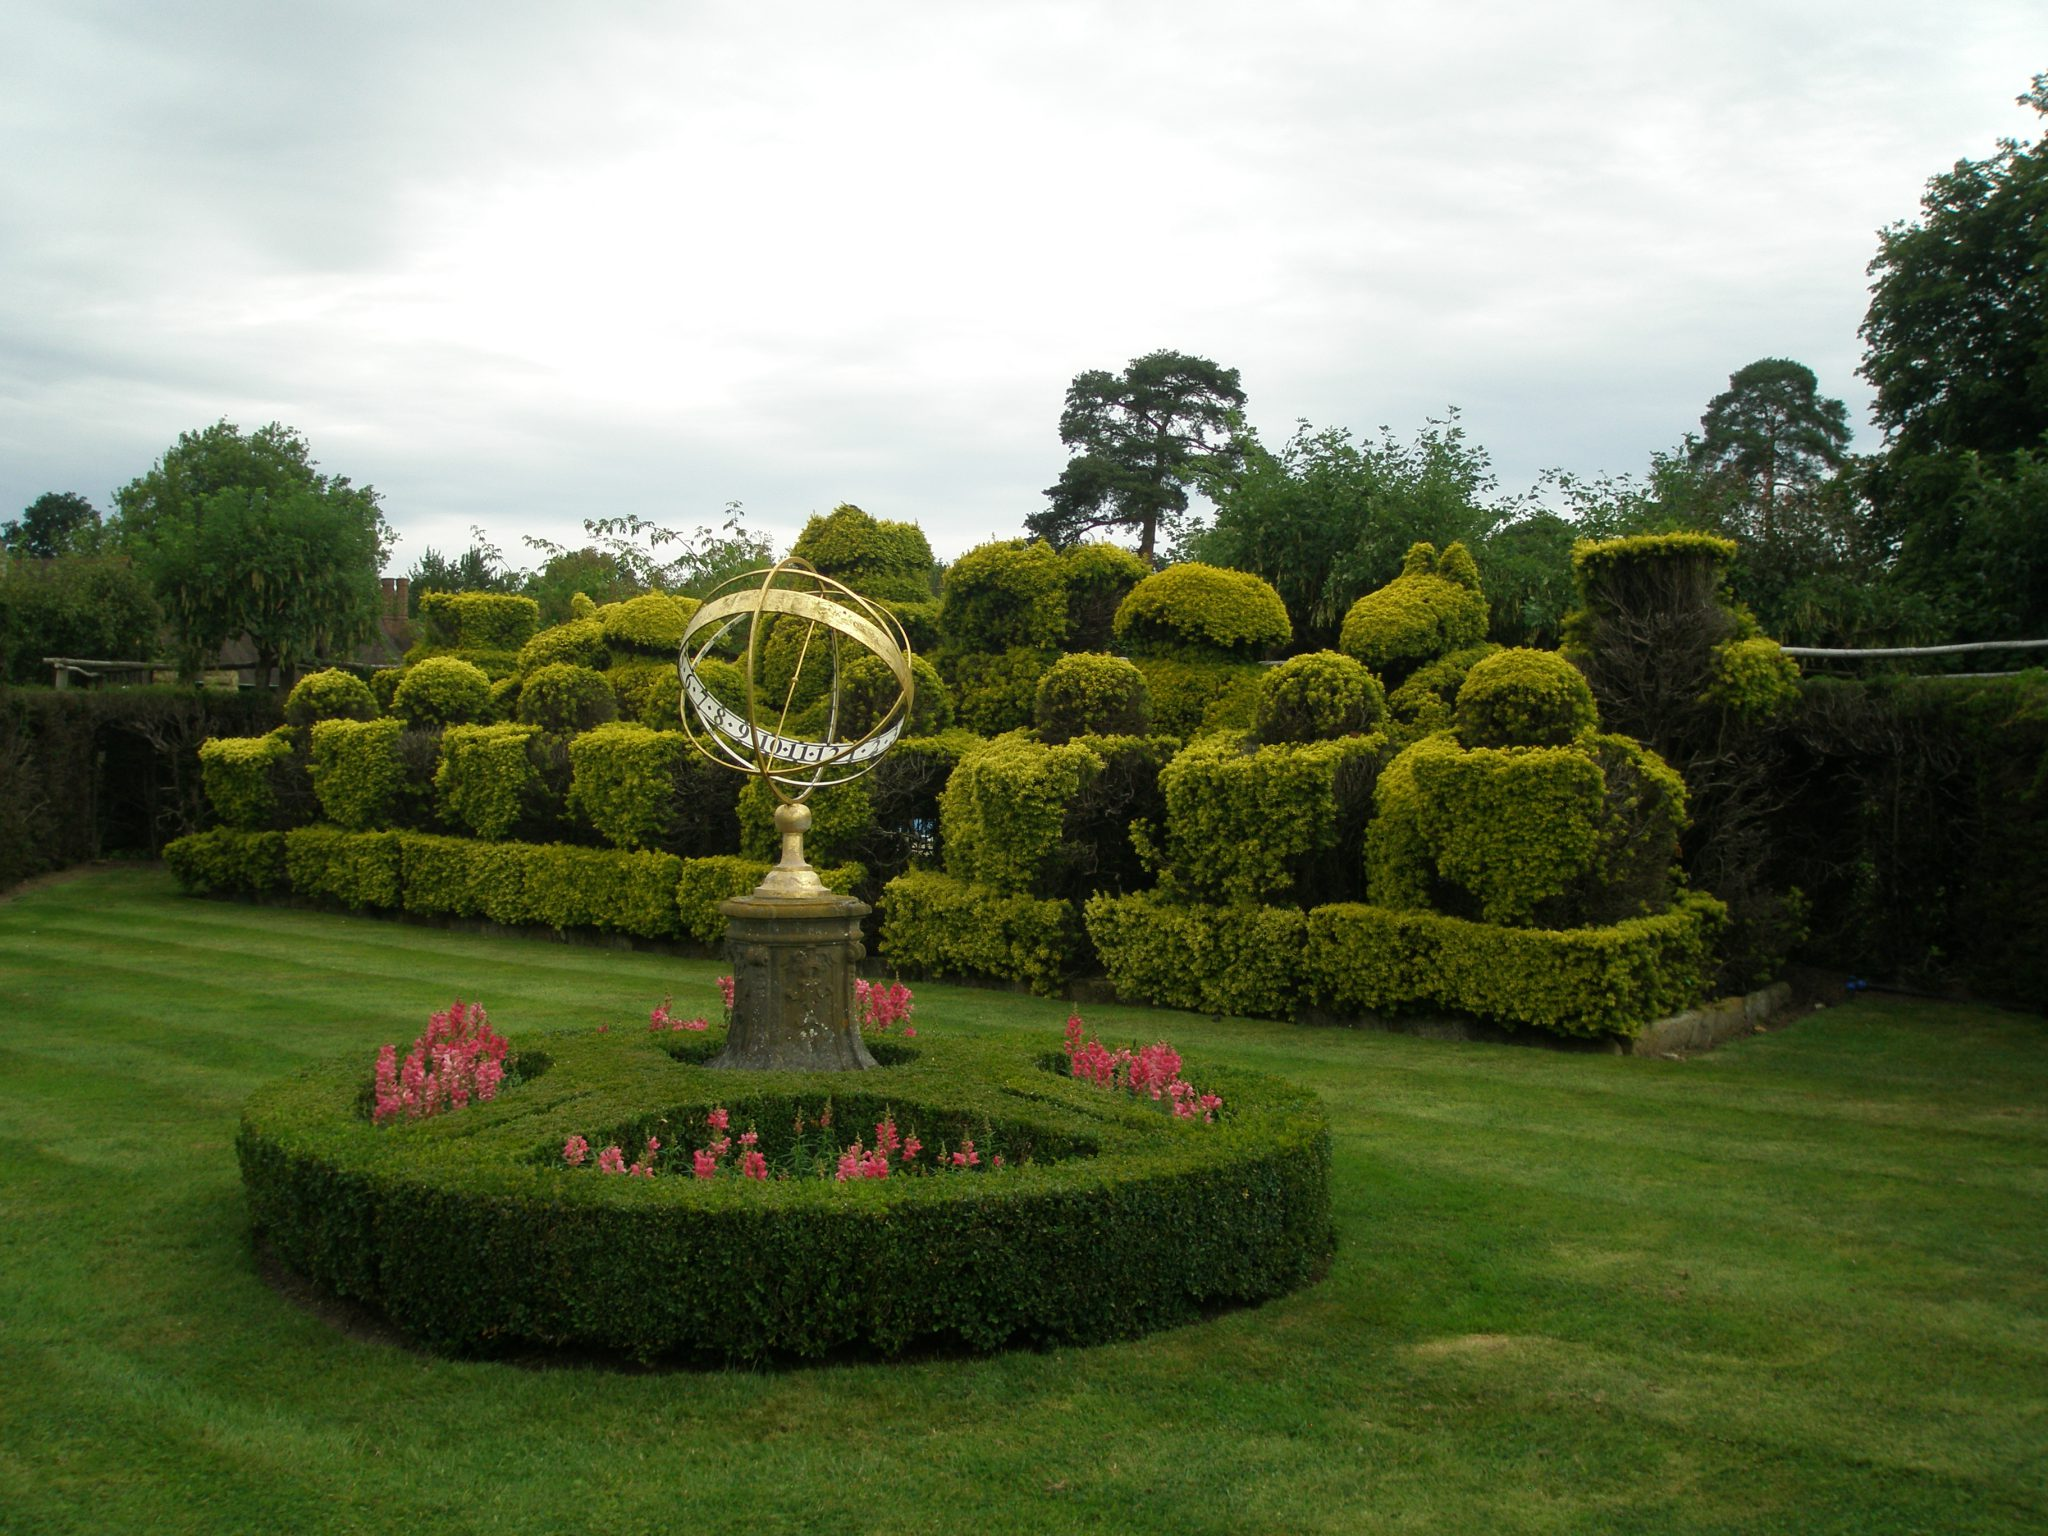 A Giant Topiary Chess Set adorns the Tudor Garden